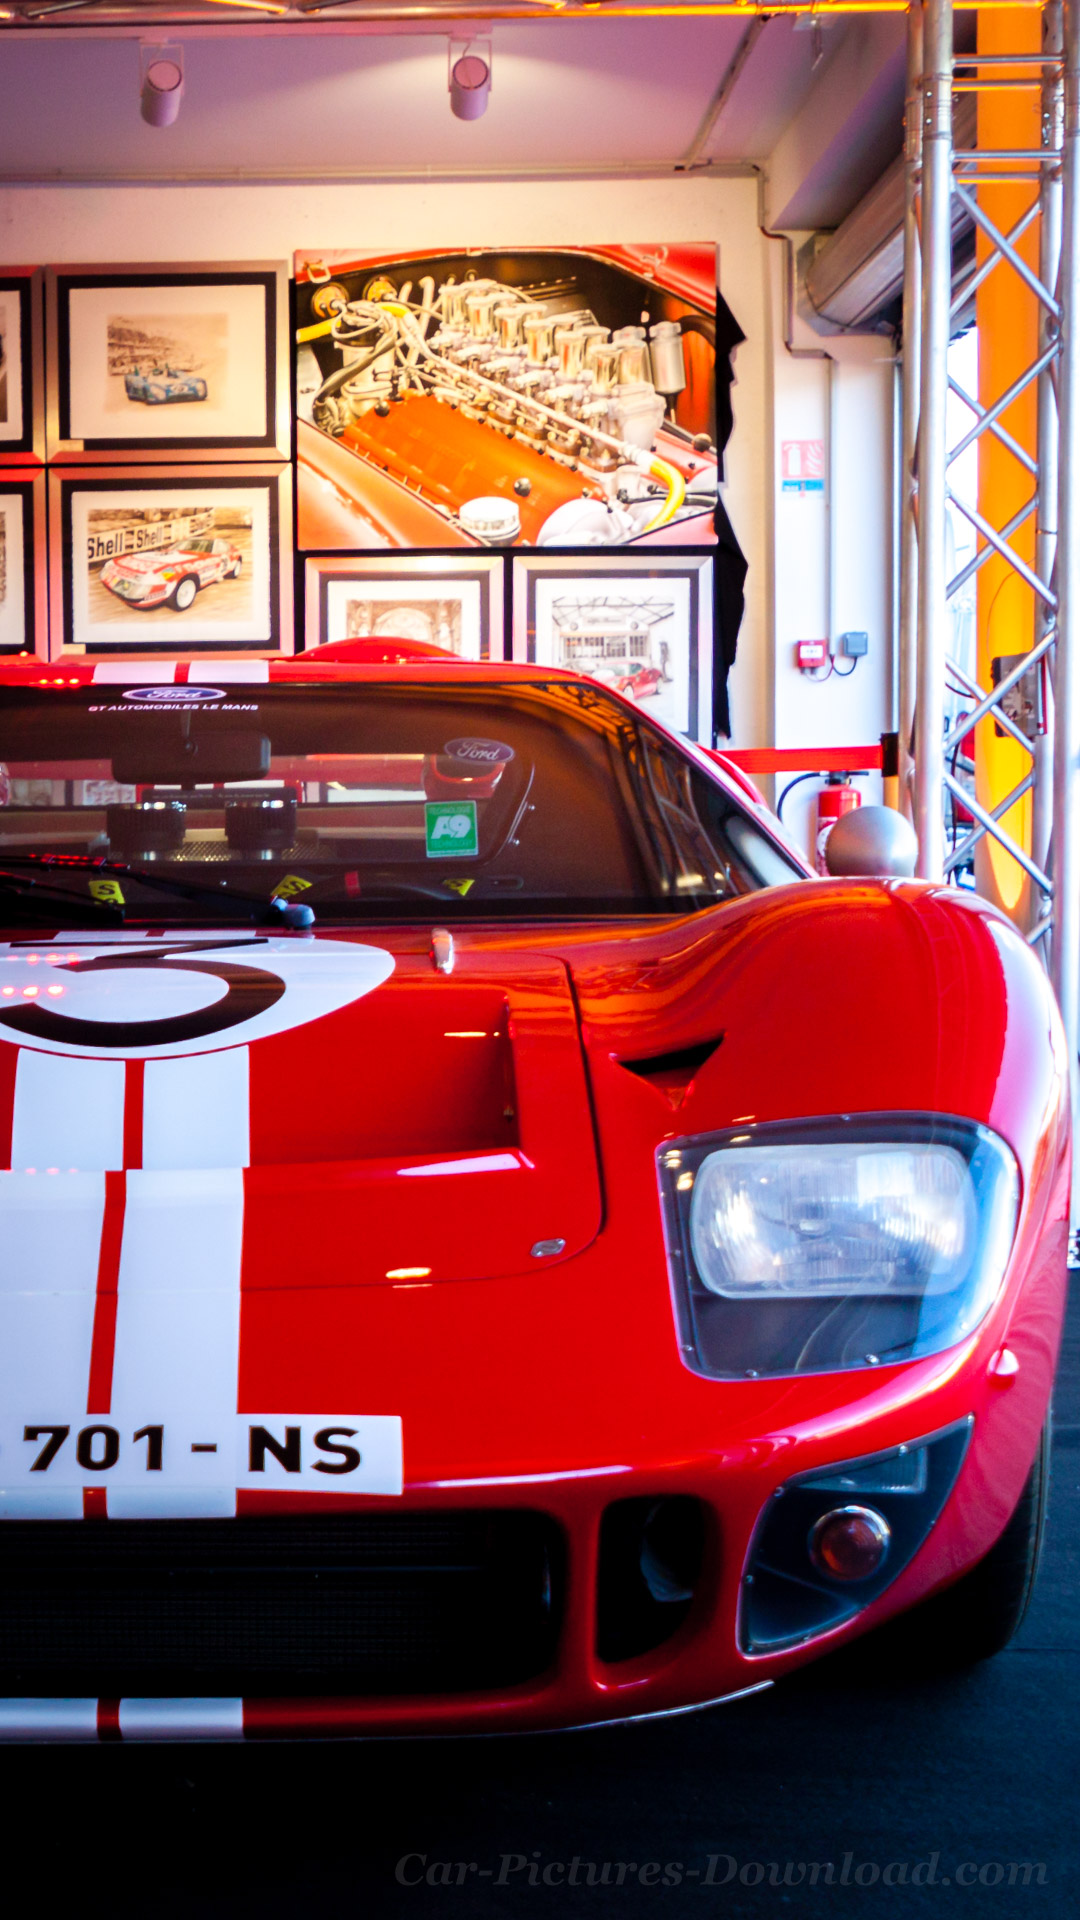 Classic Car Wallpaper Images   21K & HD   All Devices   Download Free